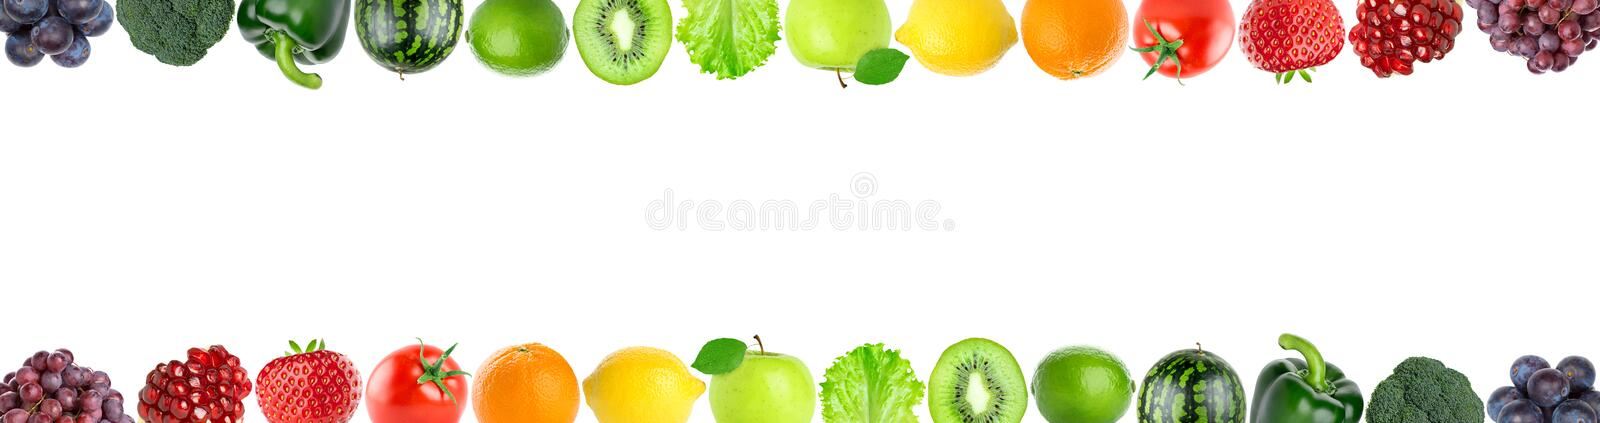 Download Fruits and vegetables stock image. Image of orange, white - 78200025